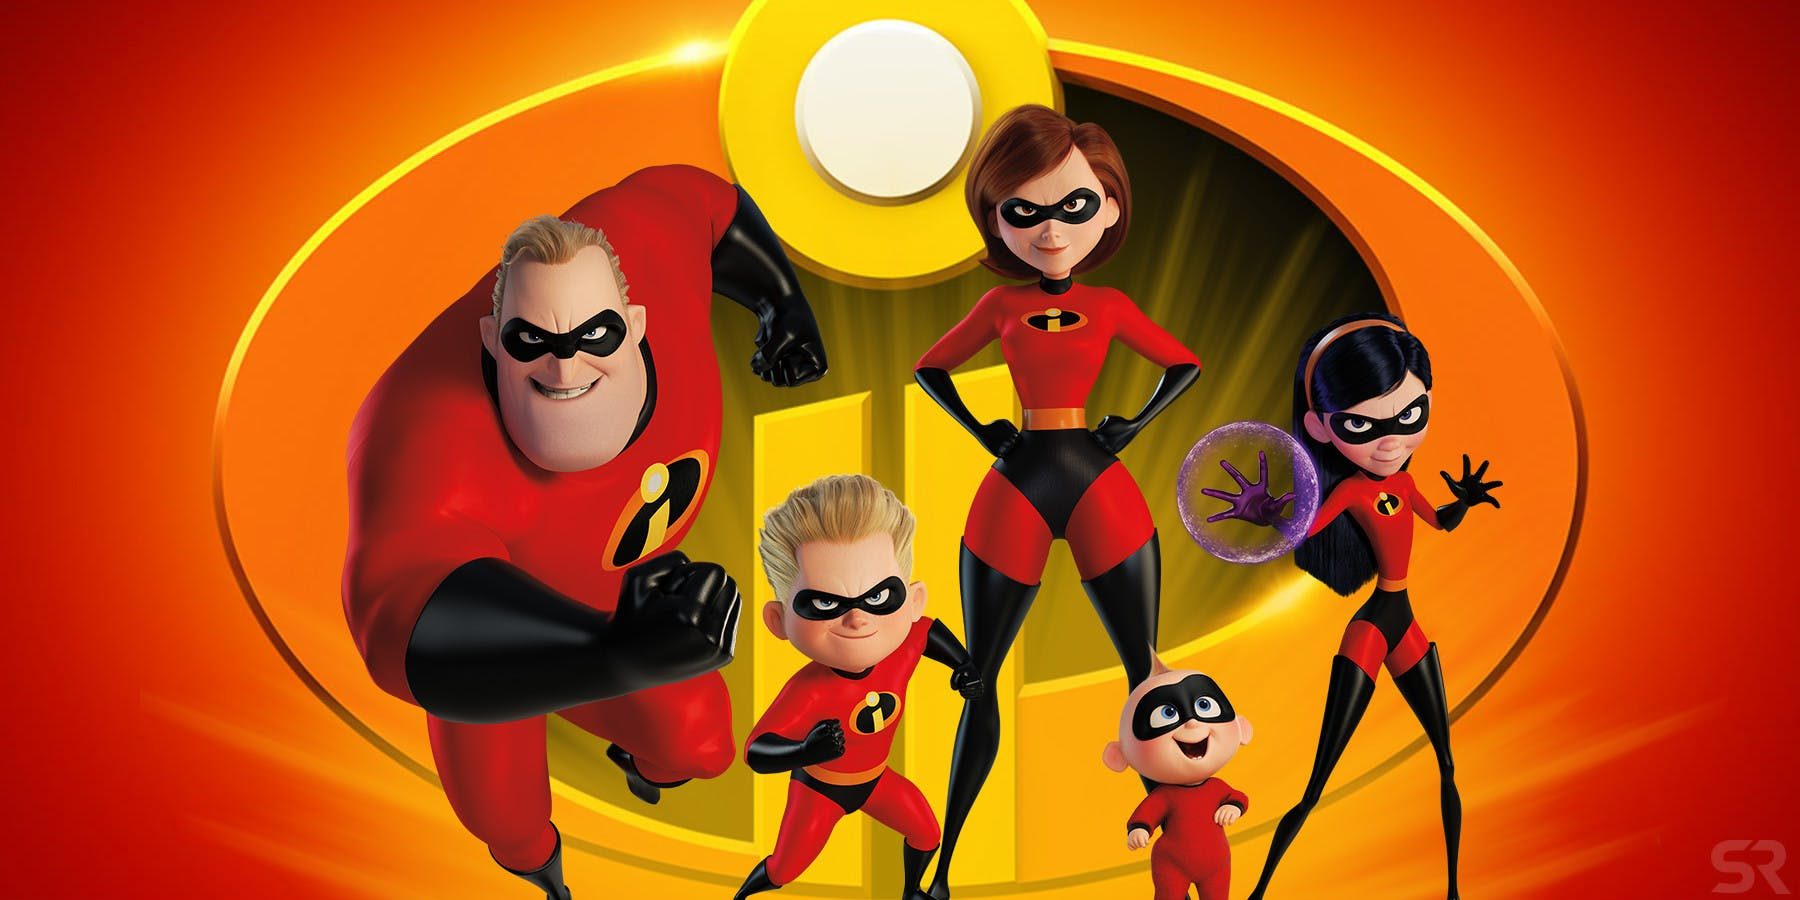 The Incredibles 2 was so good we want to watch it again!